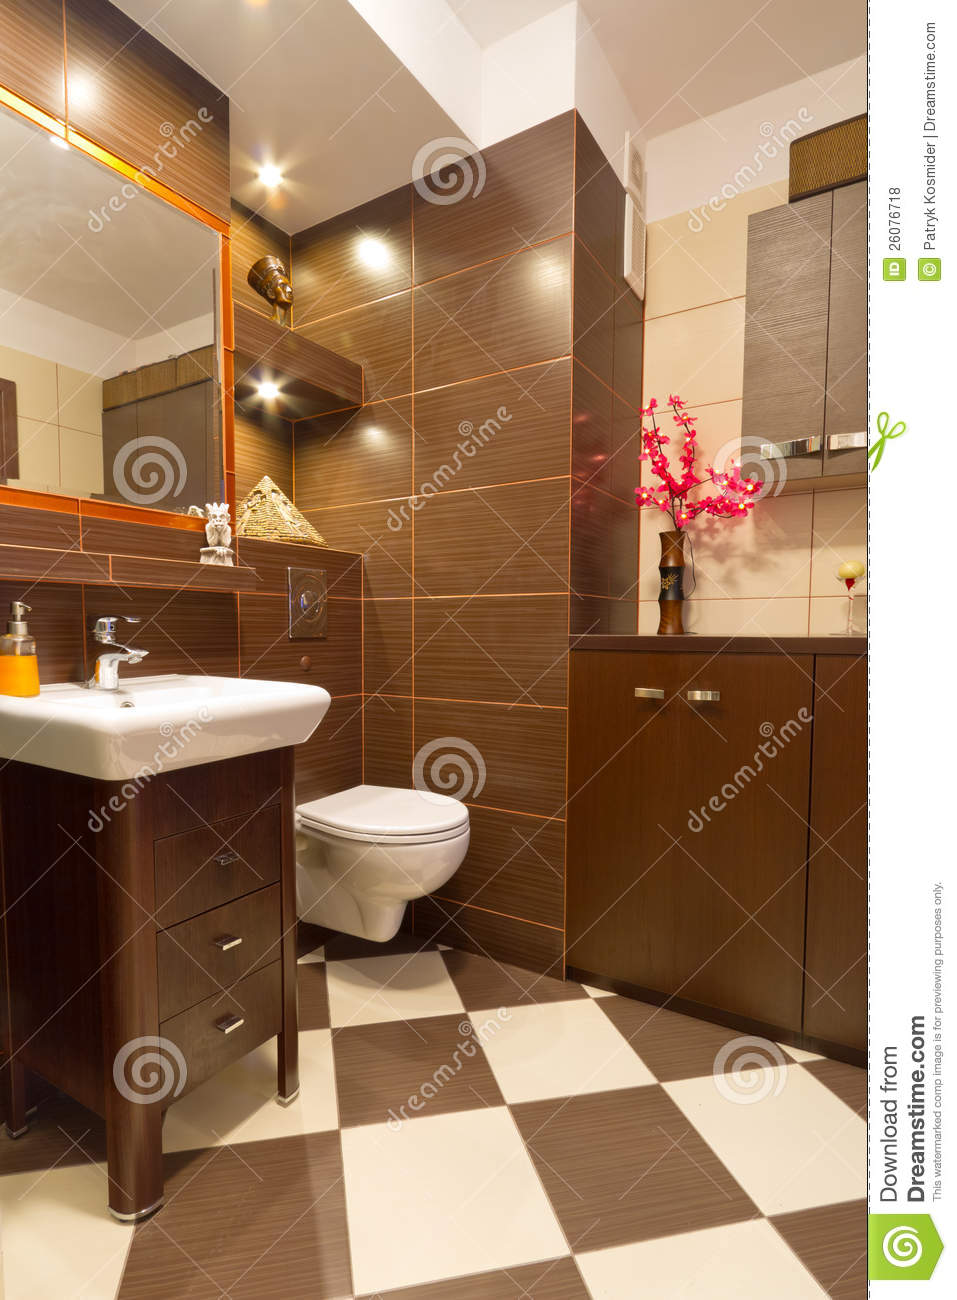 Bathroom Interior With Brown And Beige Tiles Royalty Free